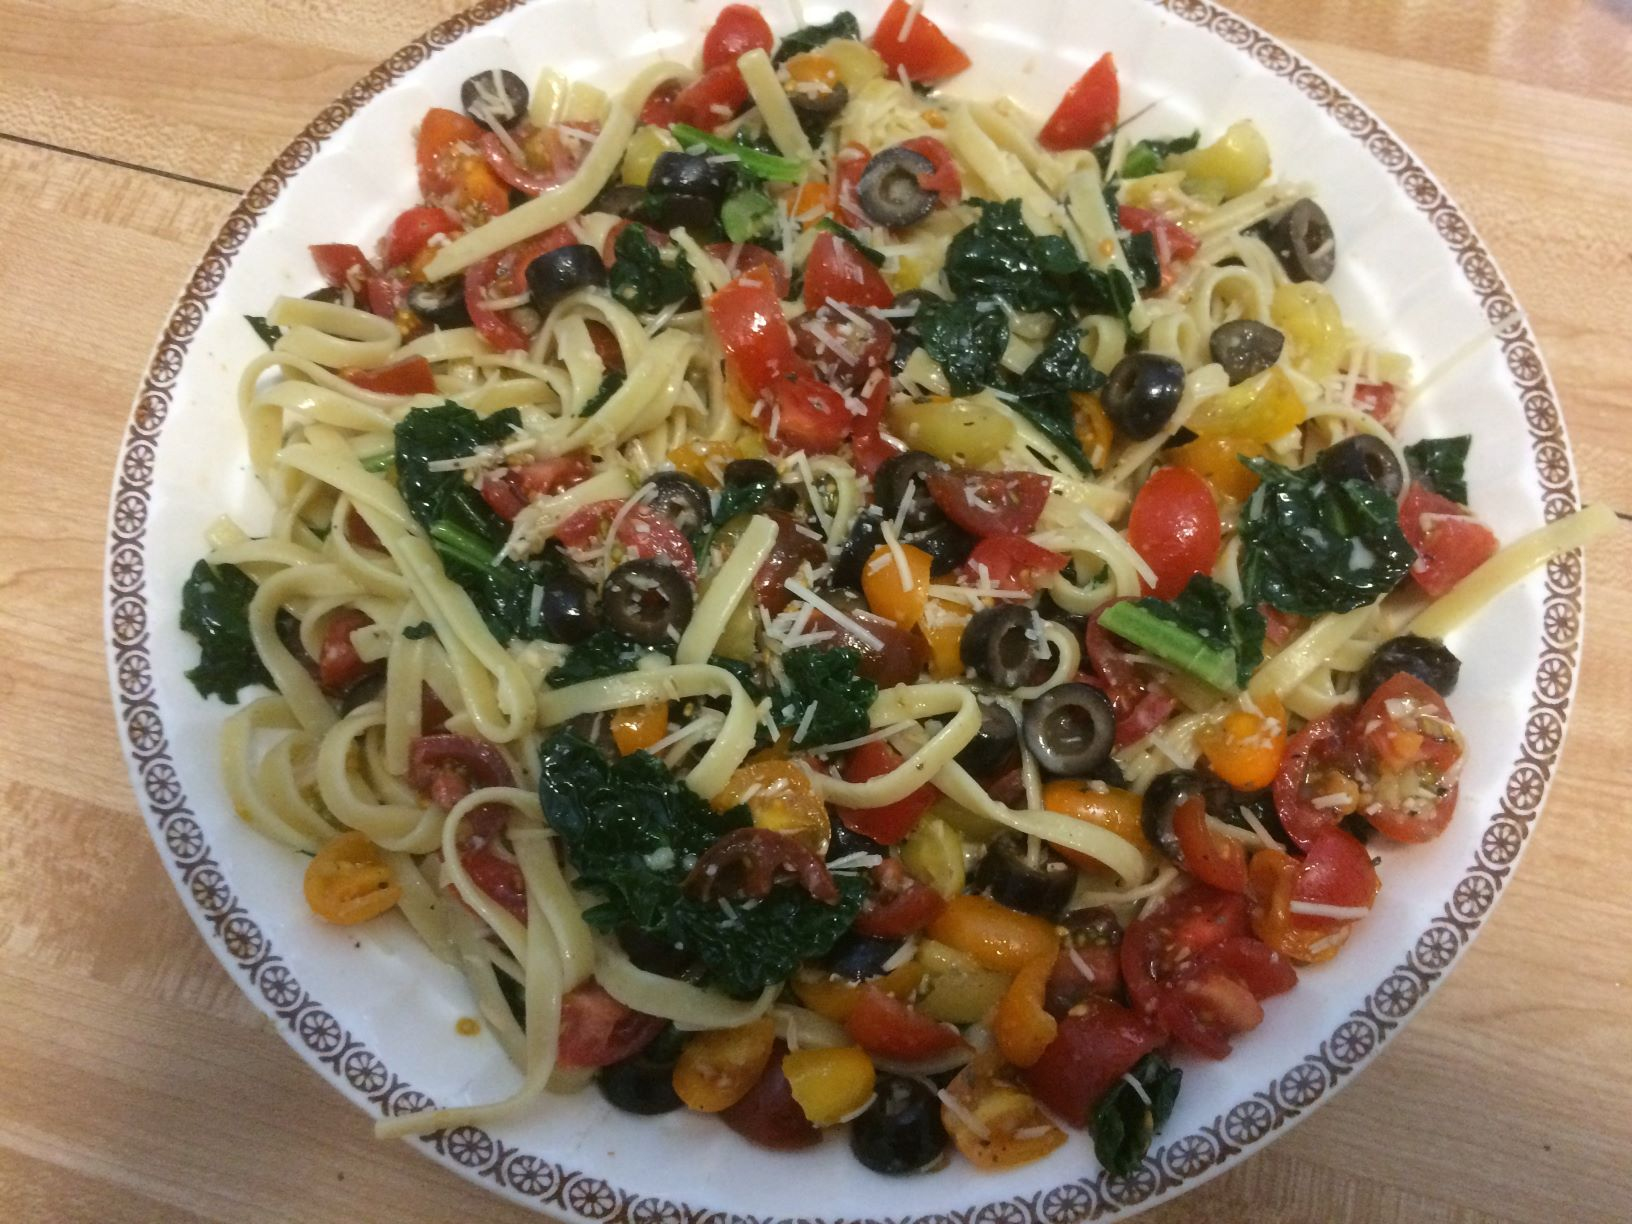 Fettuccine with Kale and Tomato-Olive-Cream Sauce